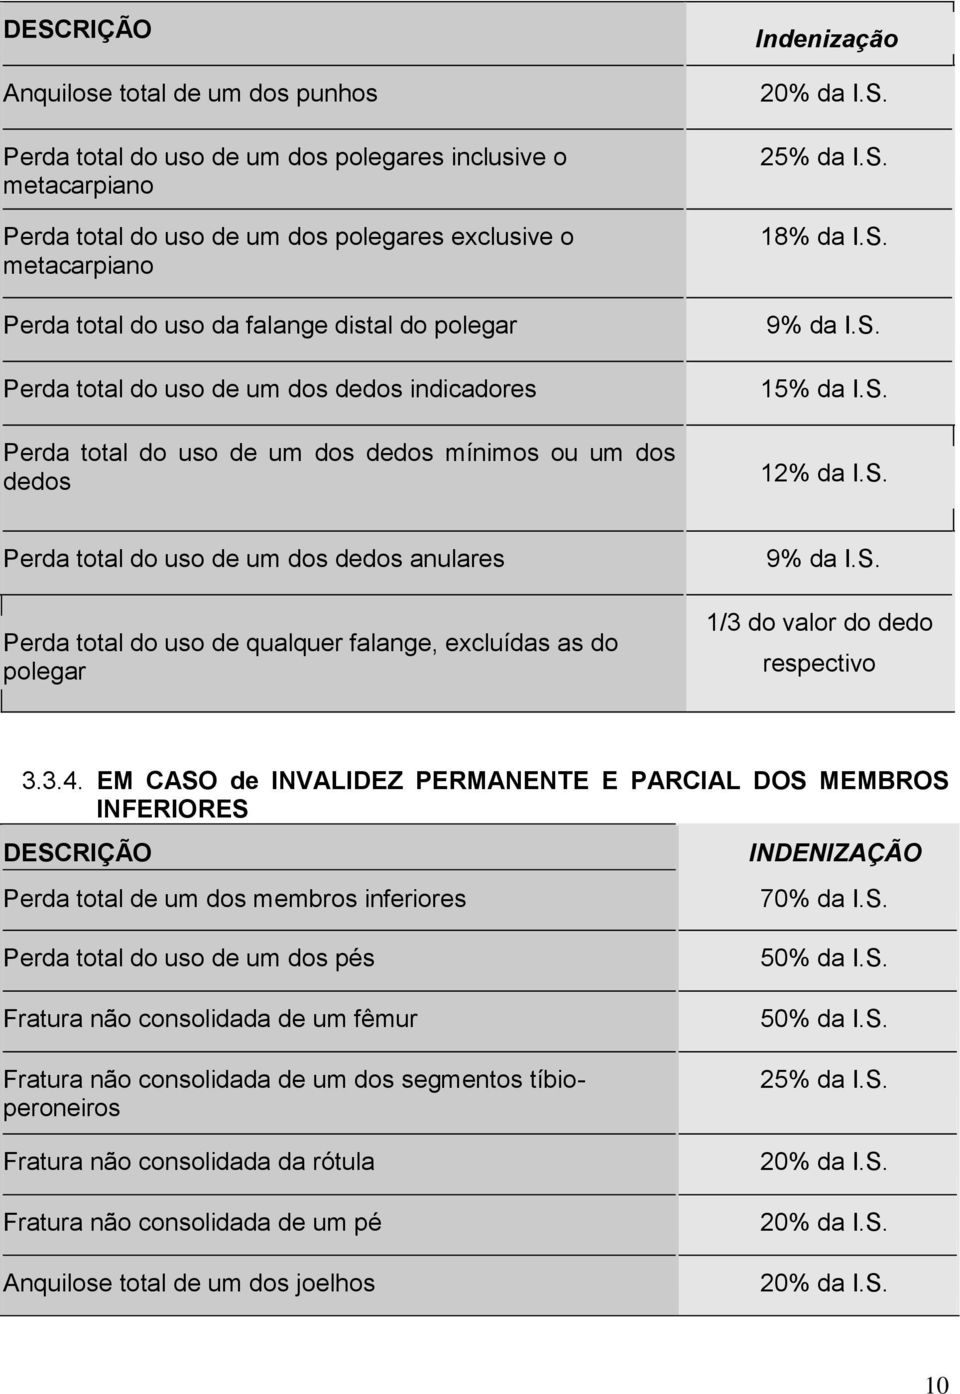 S. 12% da I.S. médios Perda total do uso de um dos dedos anulares Perda total do uso de qualquer falange, excluídas as do polegar 9% da I.S. 1/3 do valor do dedo respectivo 3.3.4.